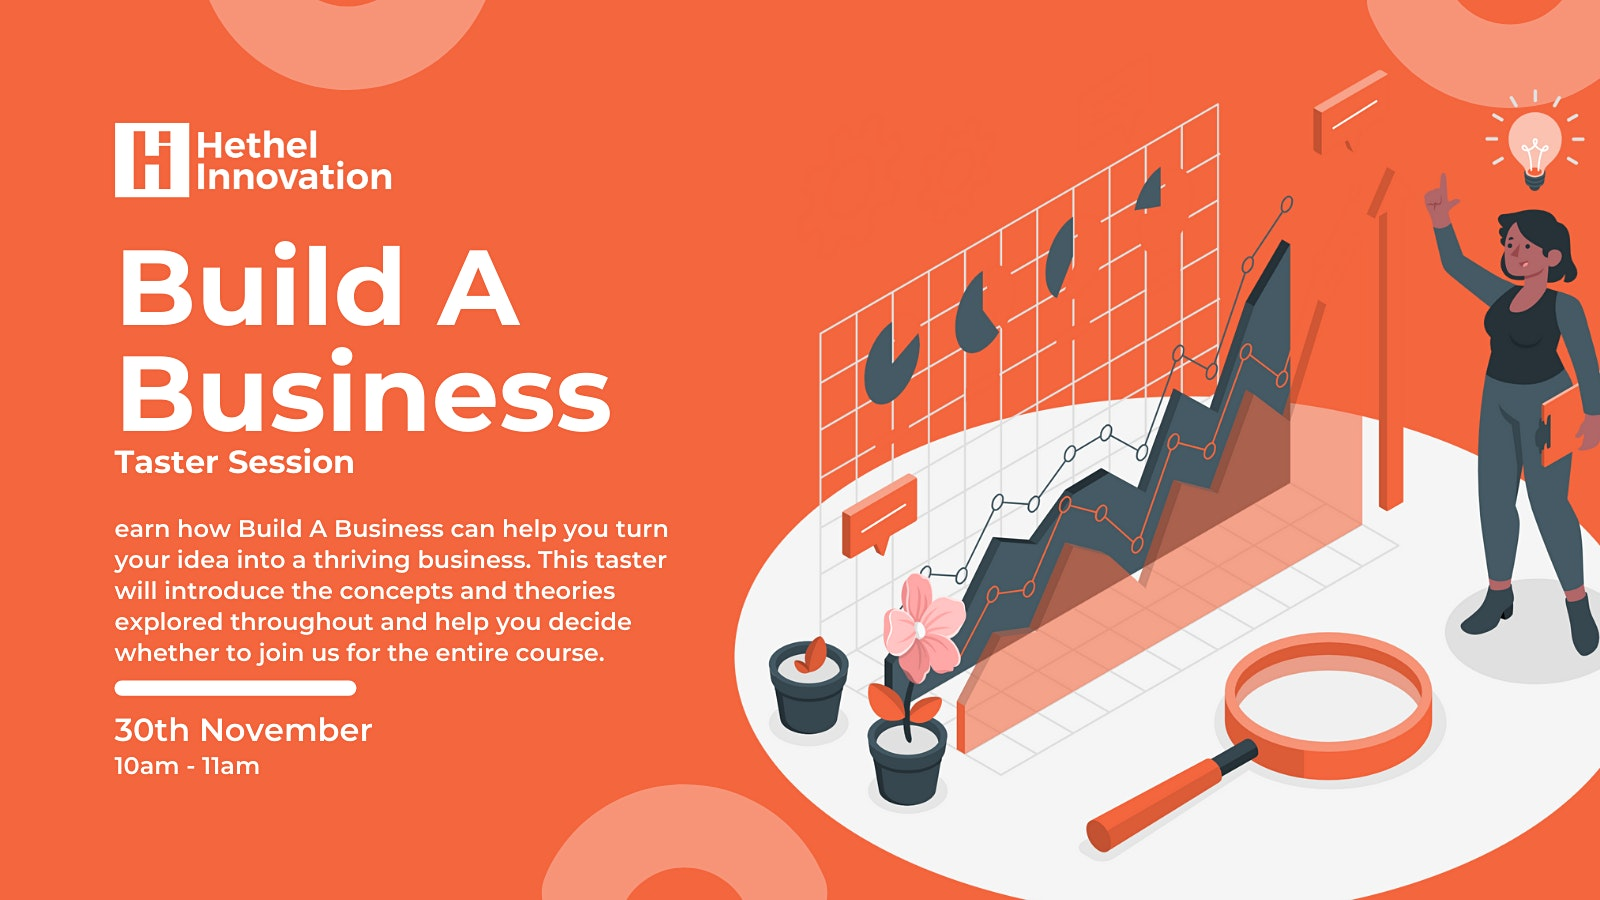 Build A Business: Taster